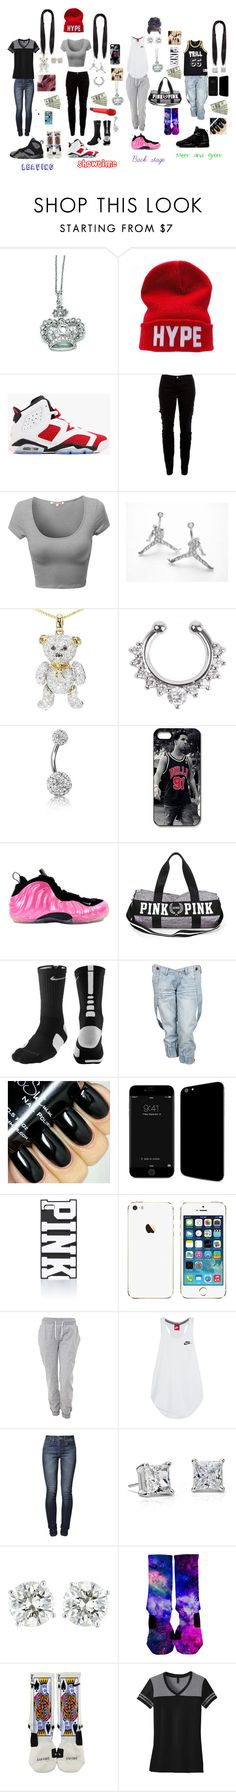 """A day in the life"" by that-trendy-jetsetter ❤ liked on Polyvore featuring Kevin Jewelers, CO, NIKE, Sennheiser, Joie, Bling Jewelry, Crafted, Champion, Freaker and Victoria's Secret PINK"